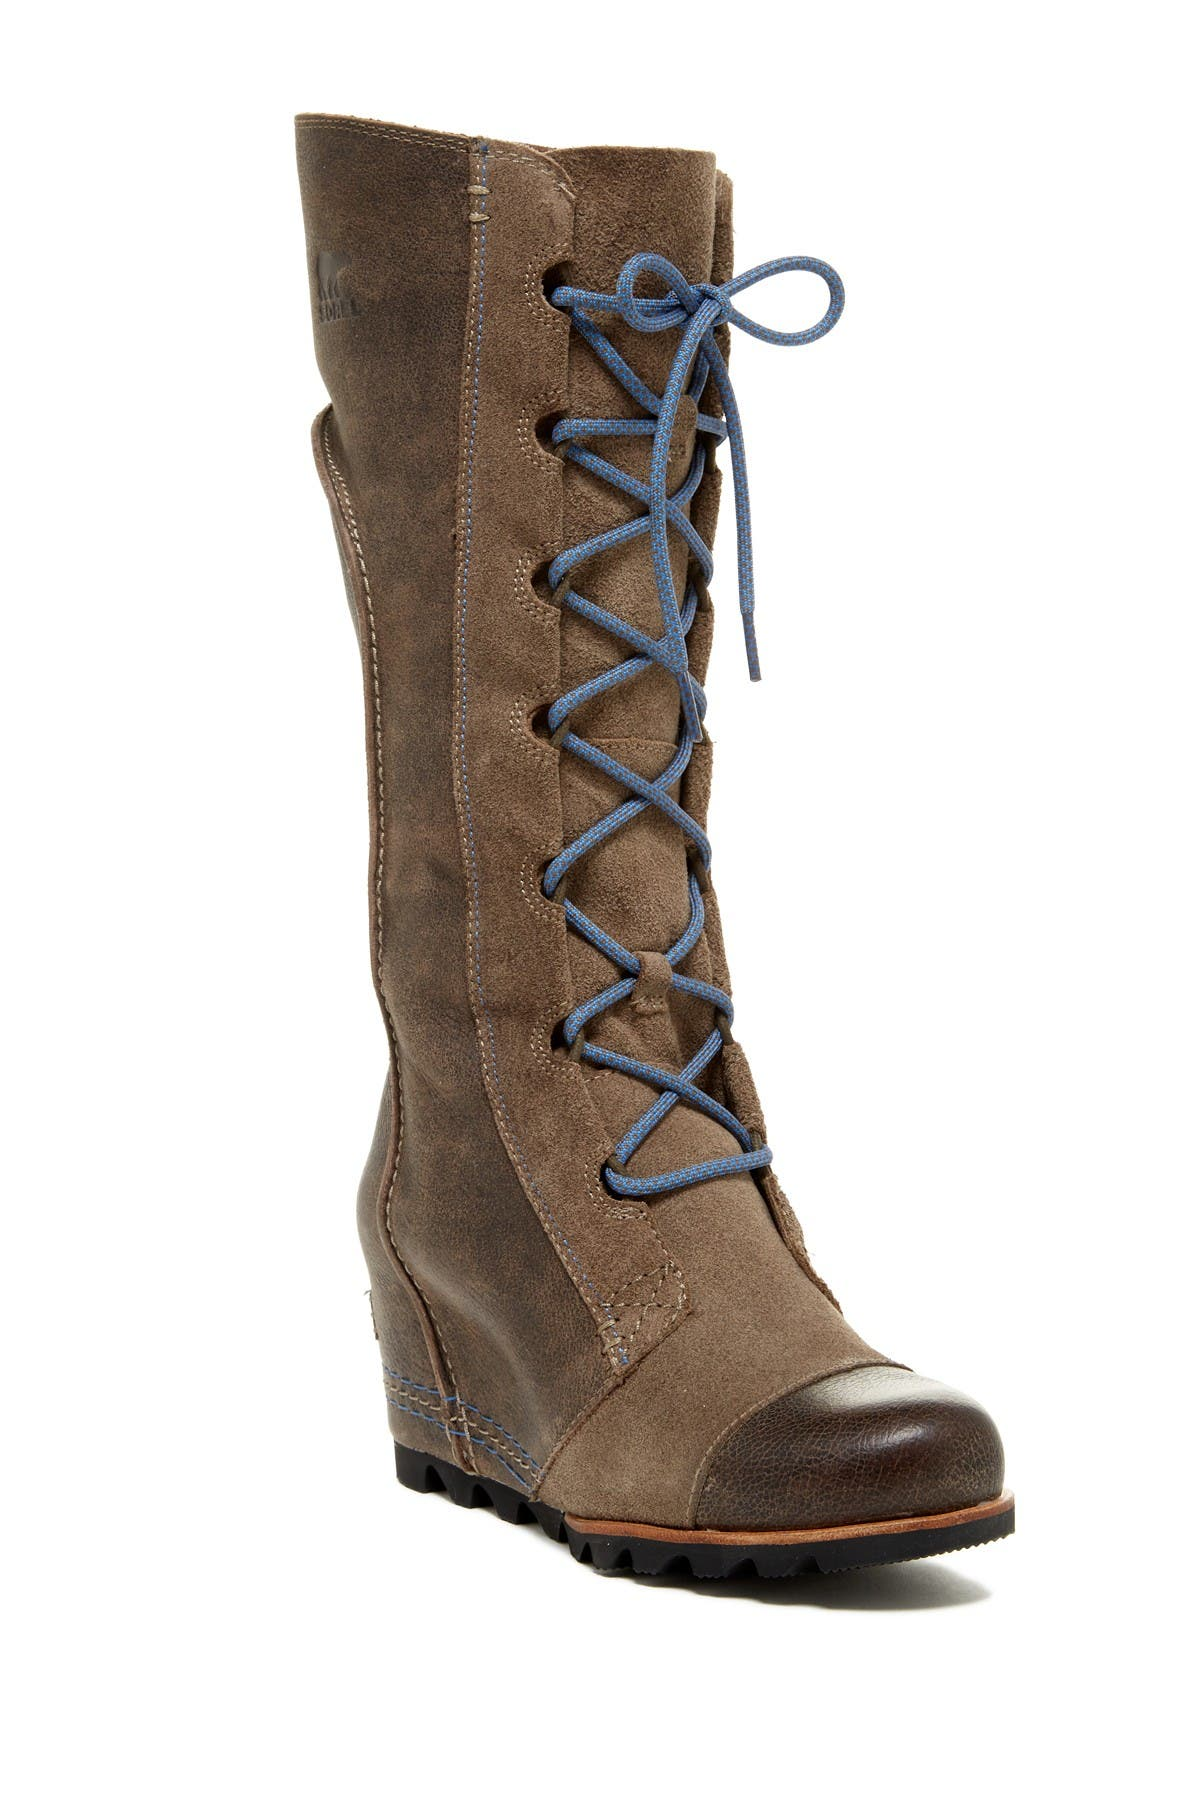 Sorel | Cate The Great Tall Wedge